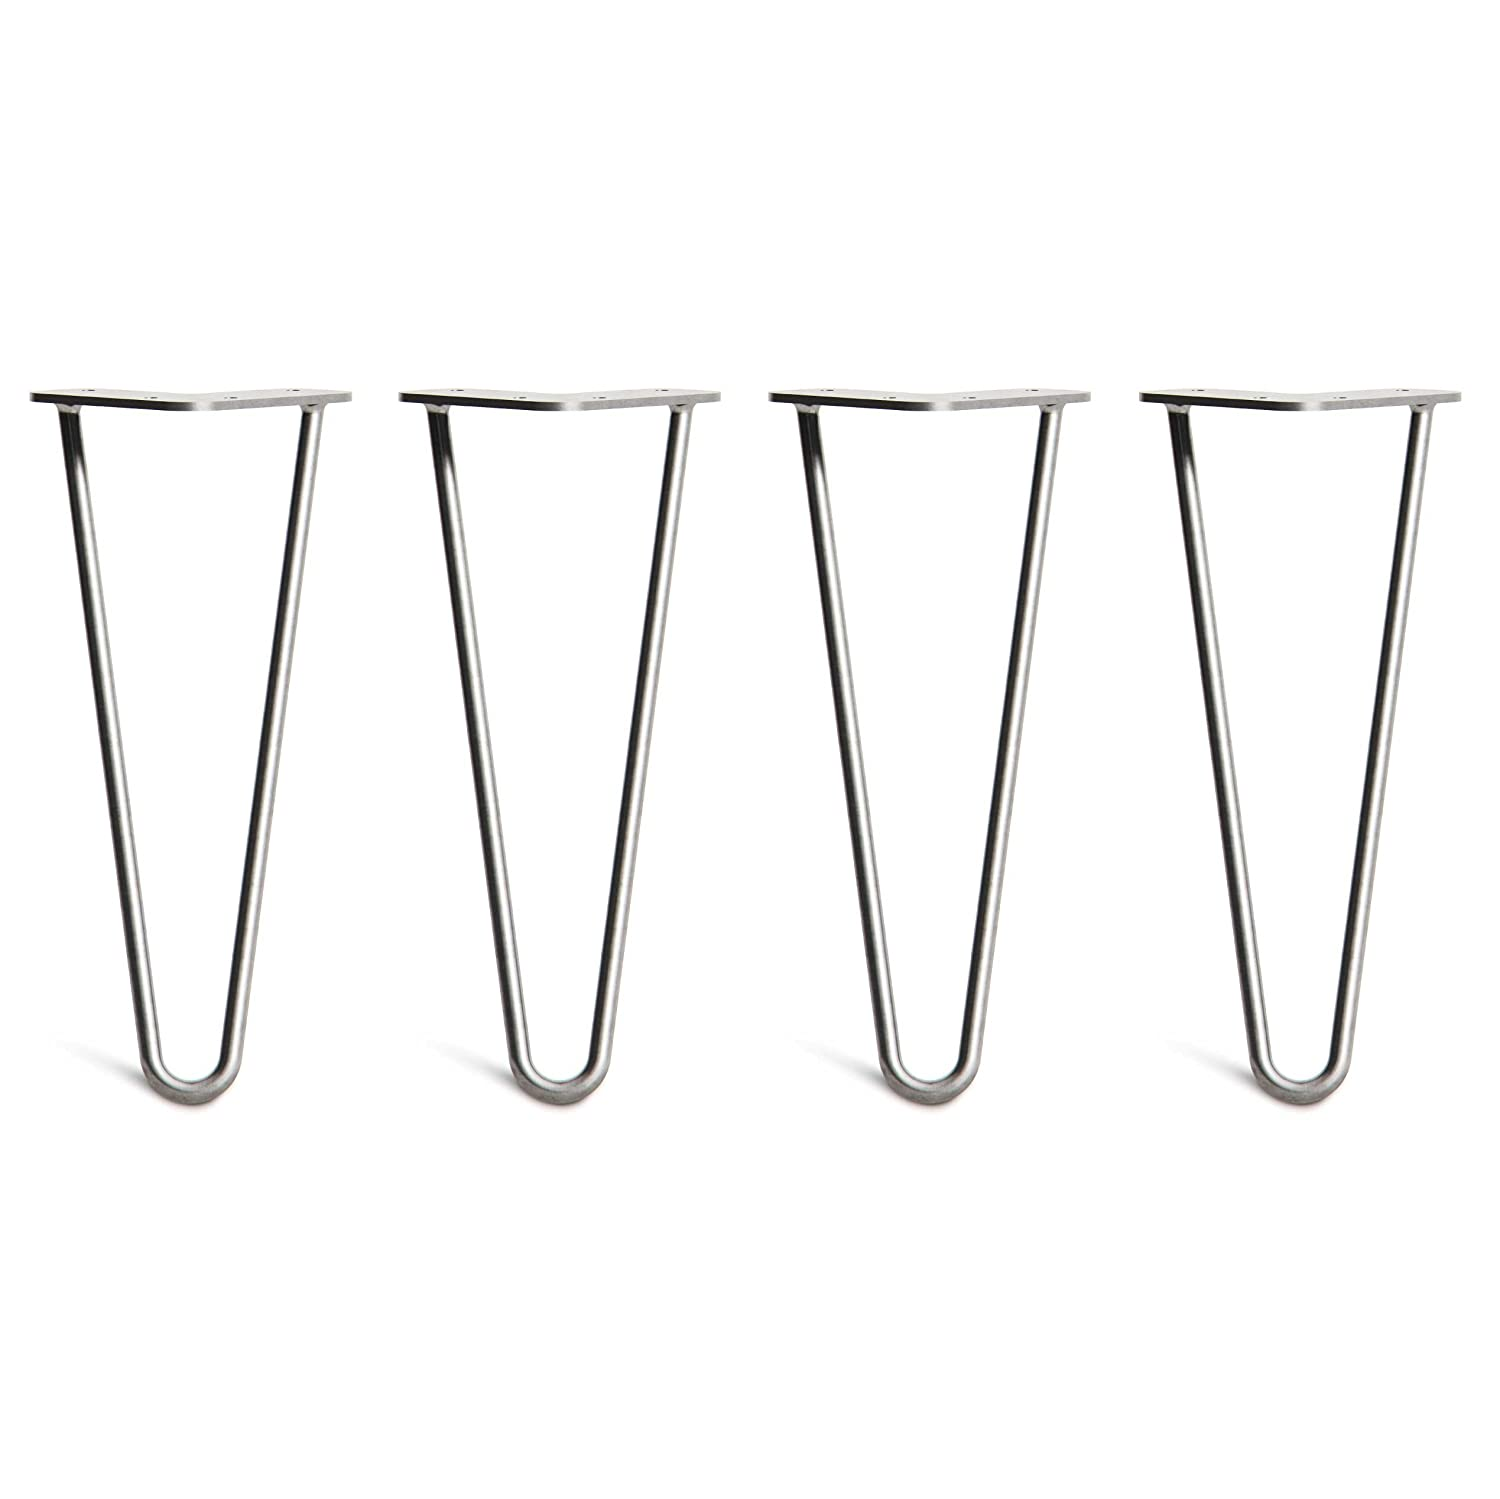 4 x Hairpin Table Legs – Superior Double Weld Steel Construction With Free Screws, Build Guide & Protector Feet, Worth £8! – Mid-Century Modern Style – 10cm To 86cm, All Finishes (10mm) The Hairpin Leg Co.